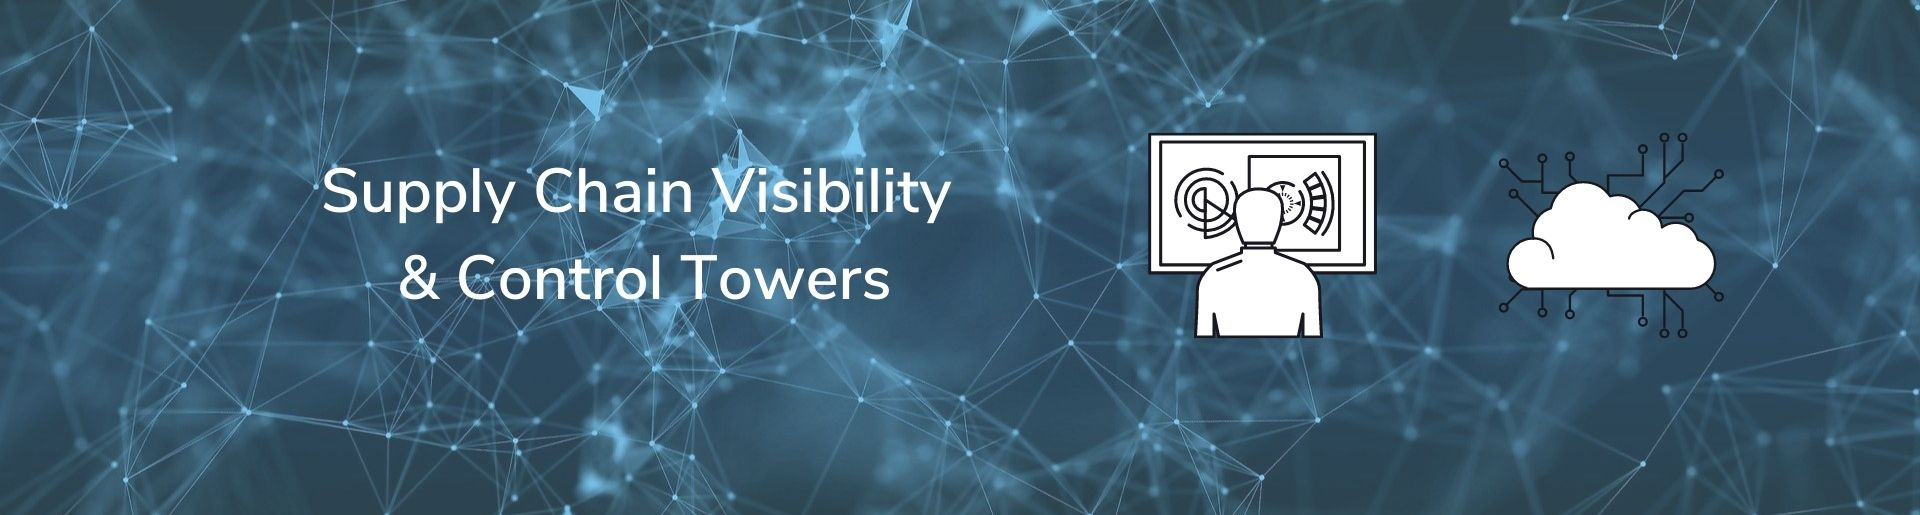 How does supply chain visibility benefit from a Control Tower?